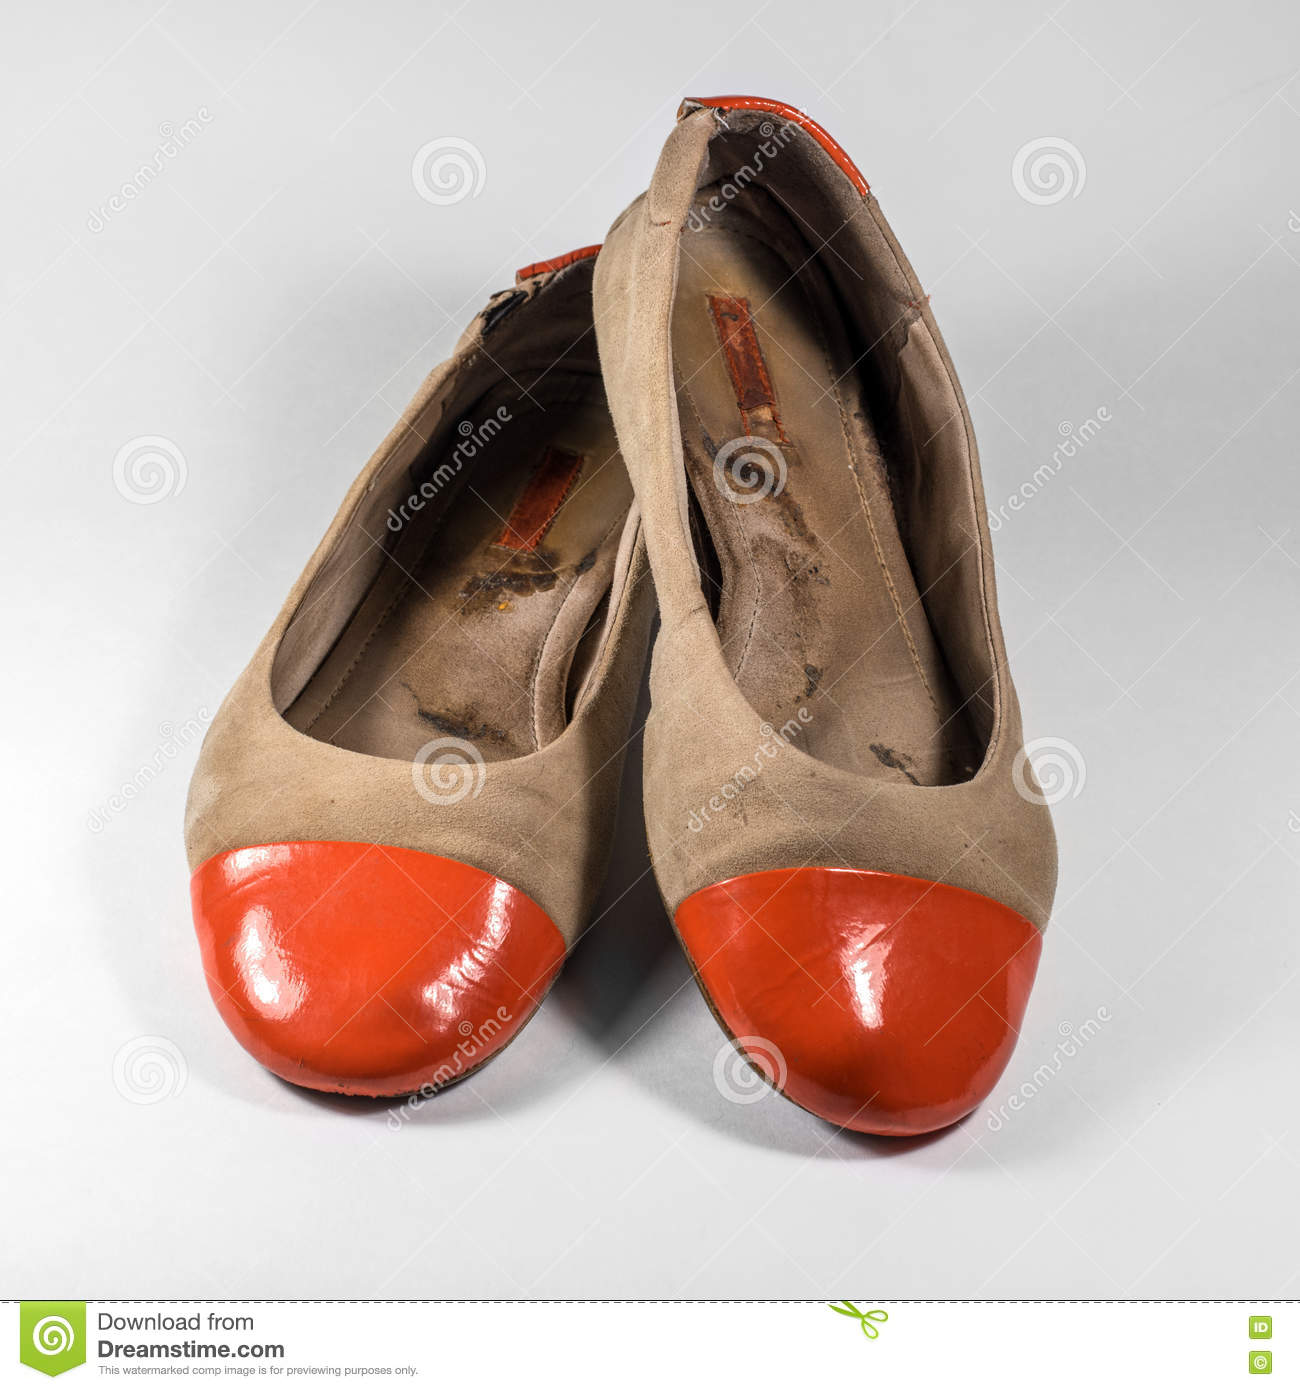 Dirty female shoes with orange socks glossy.